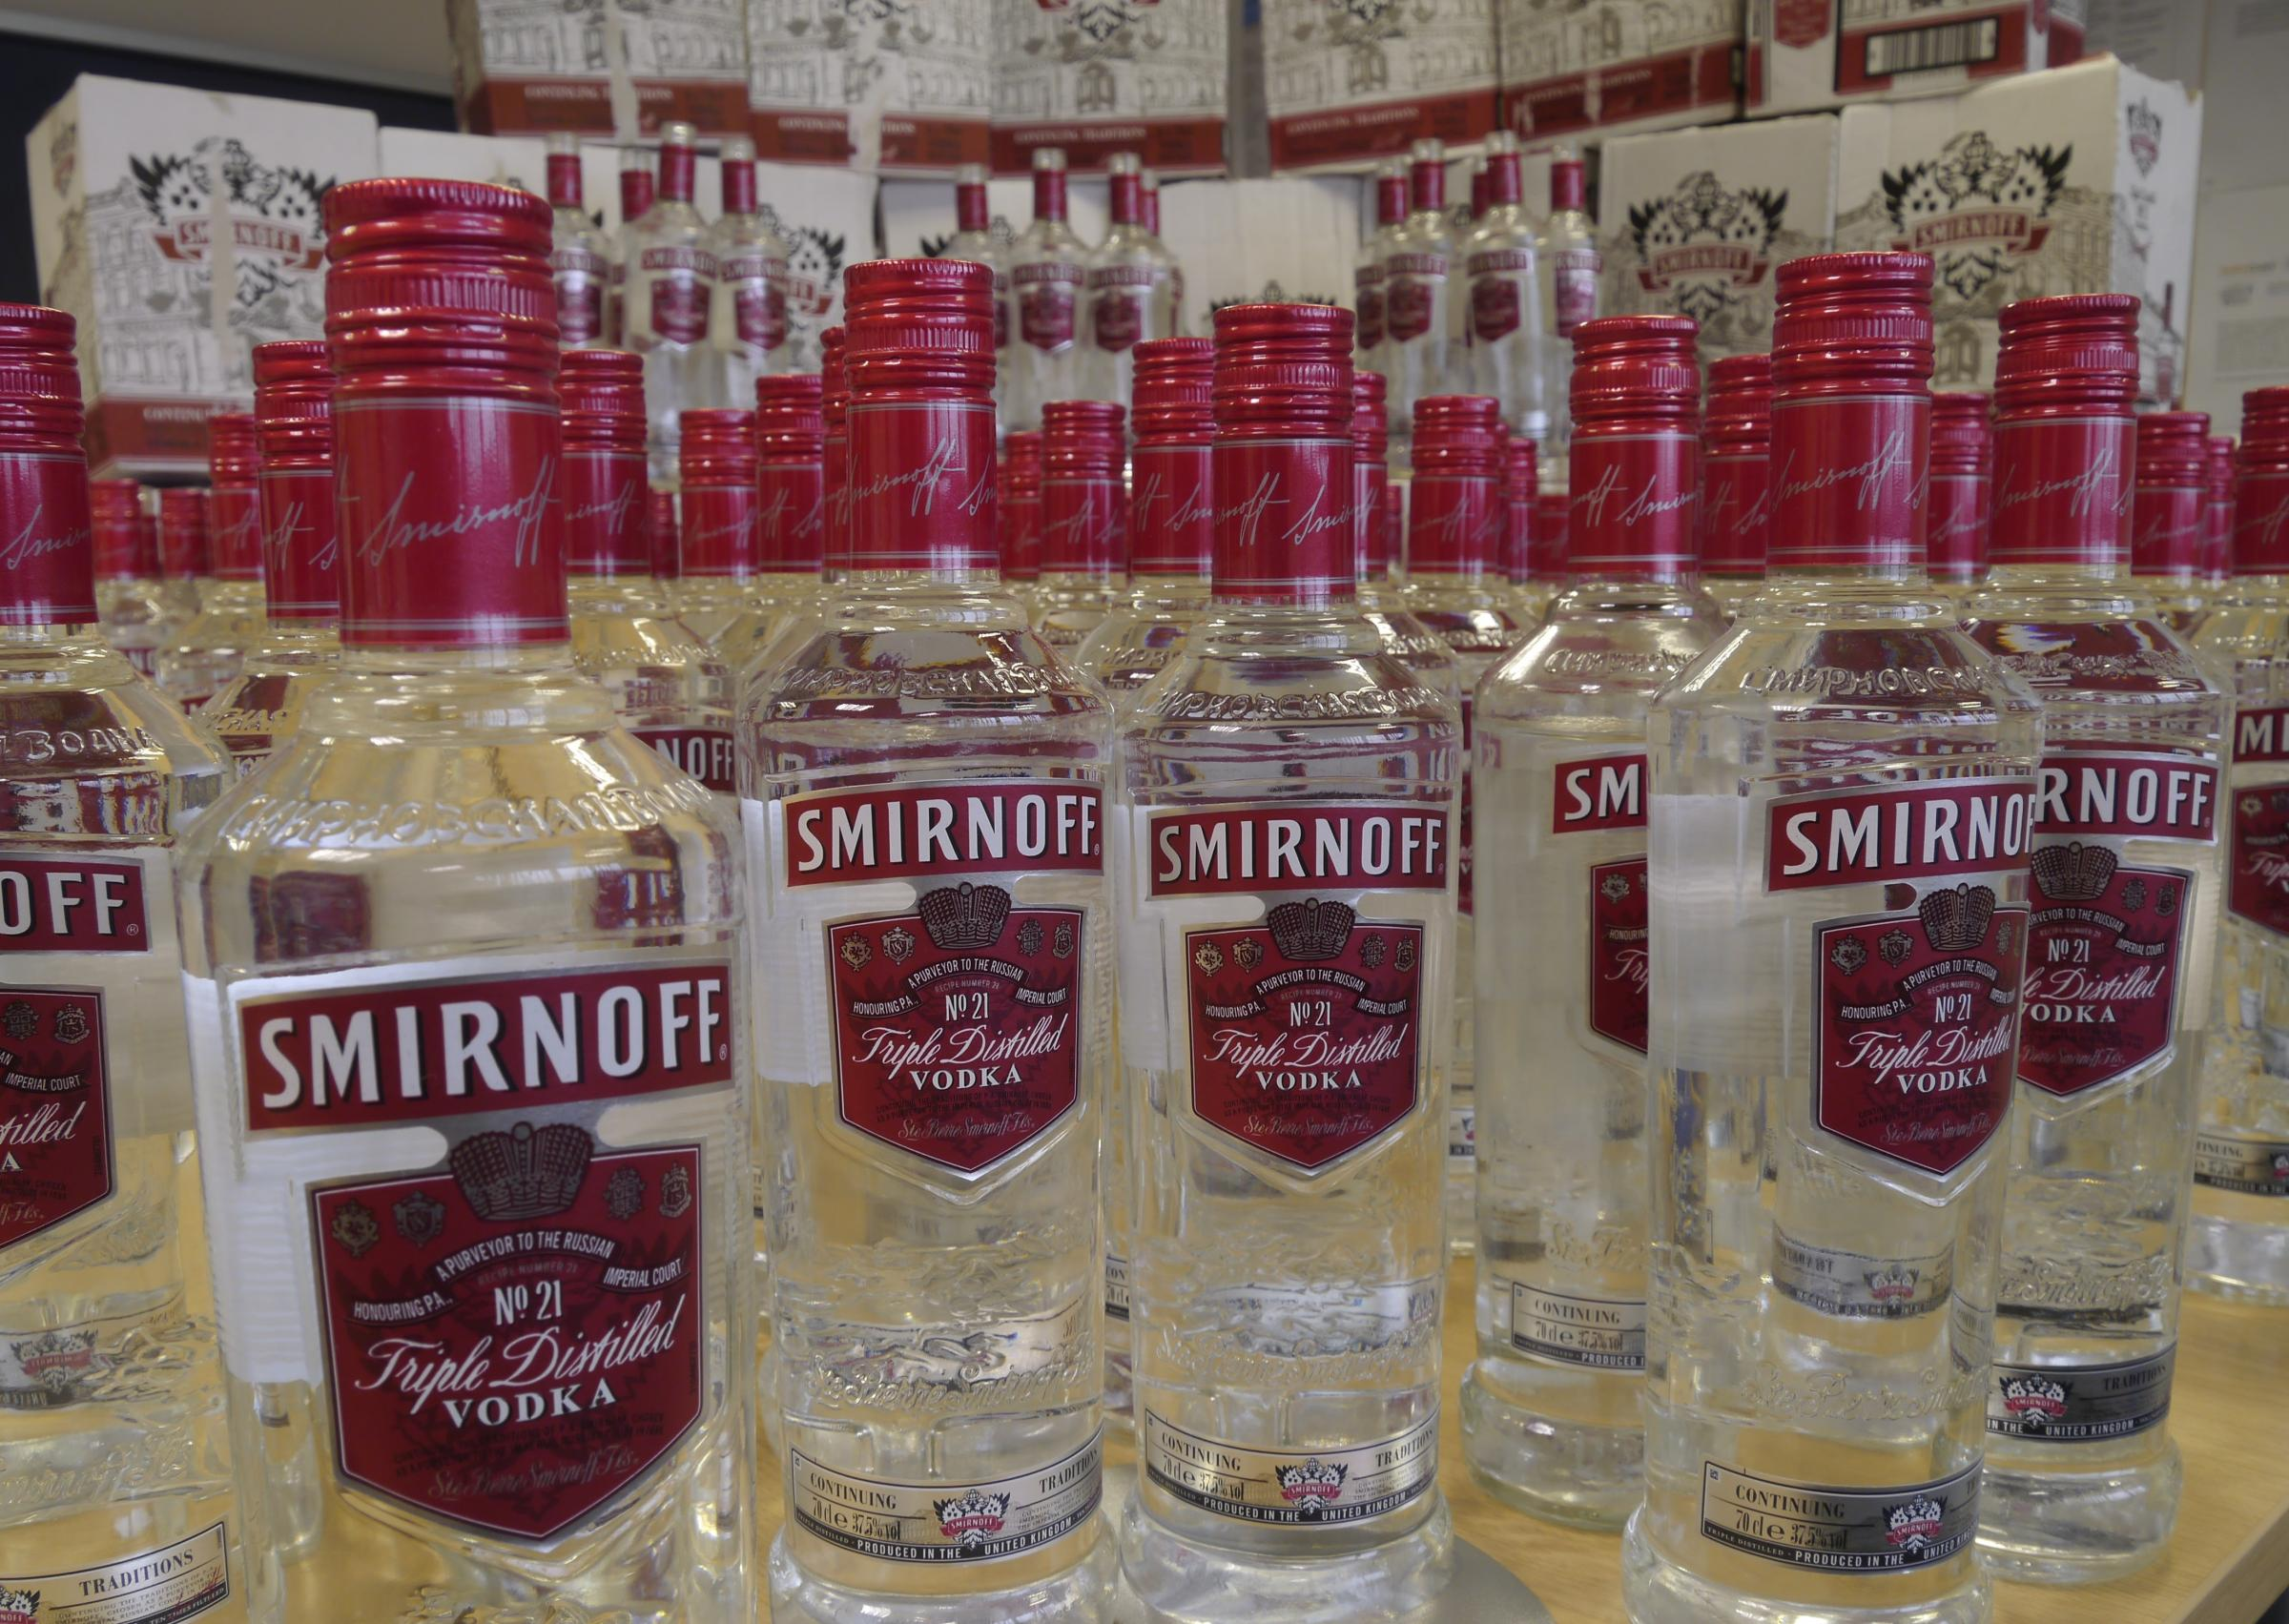 Counterfeit wine and vodka has been seized from Waltham Forest shops